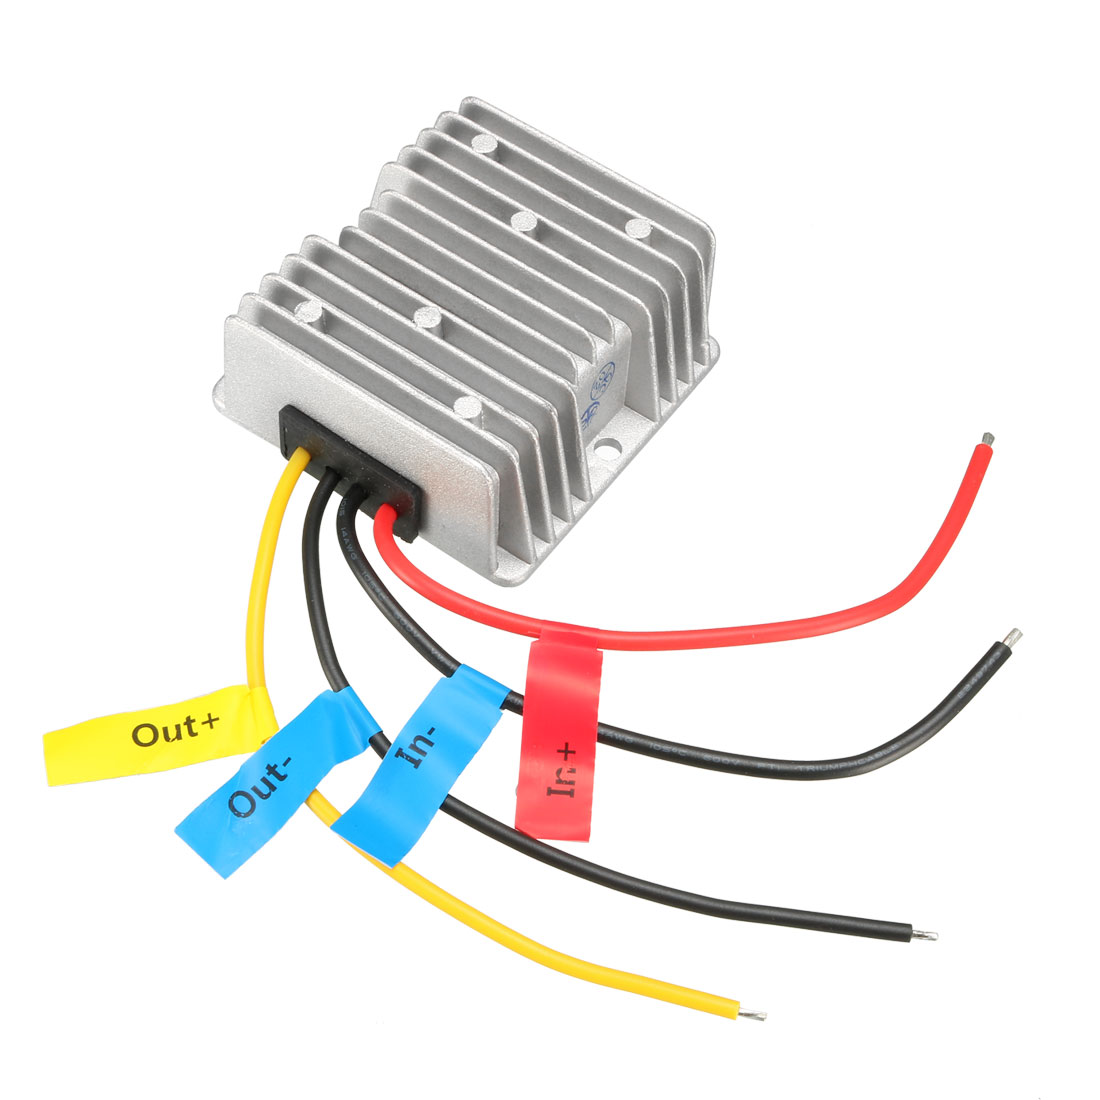 uxcell Power Converter Regulator DC 12V(10V~16V) Step-Up to DC 24V 10A 240W Waterproof Voltage Convert Transformer